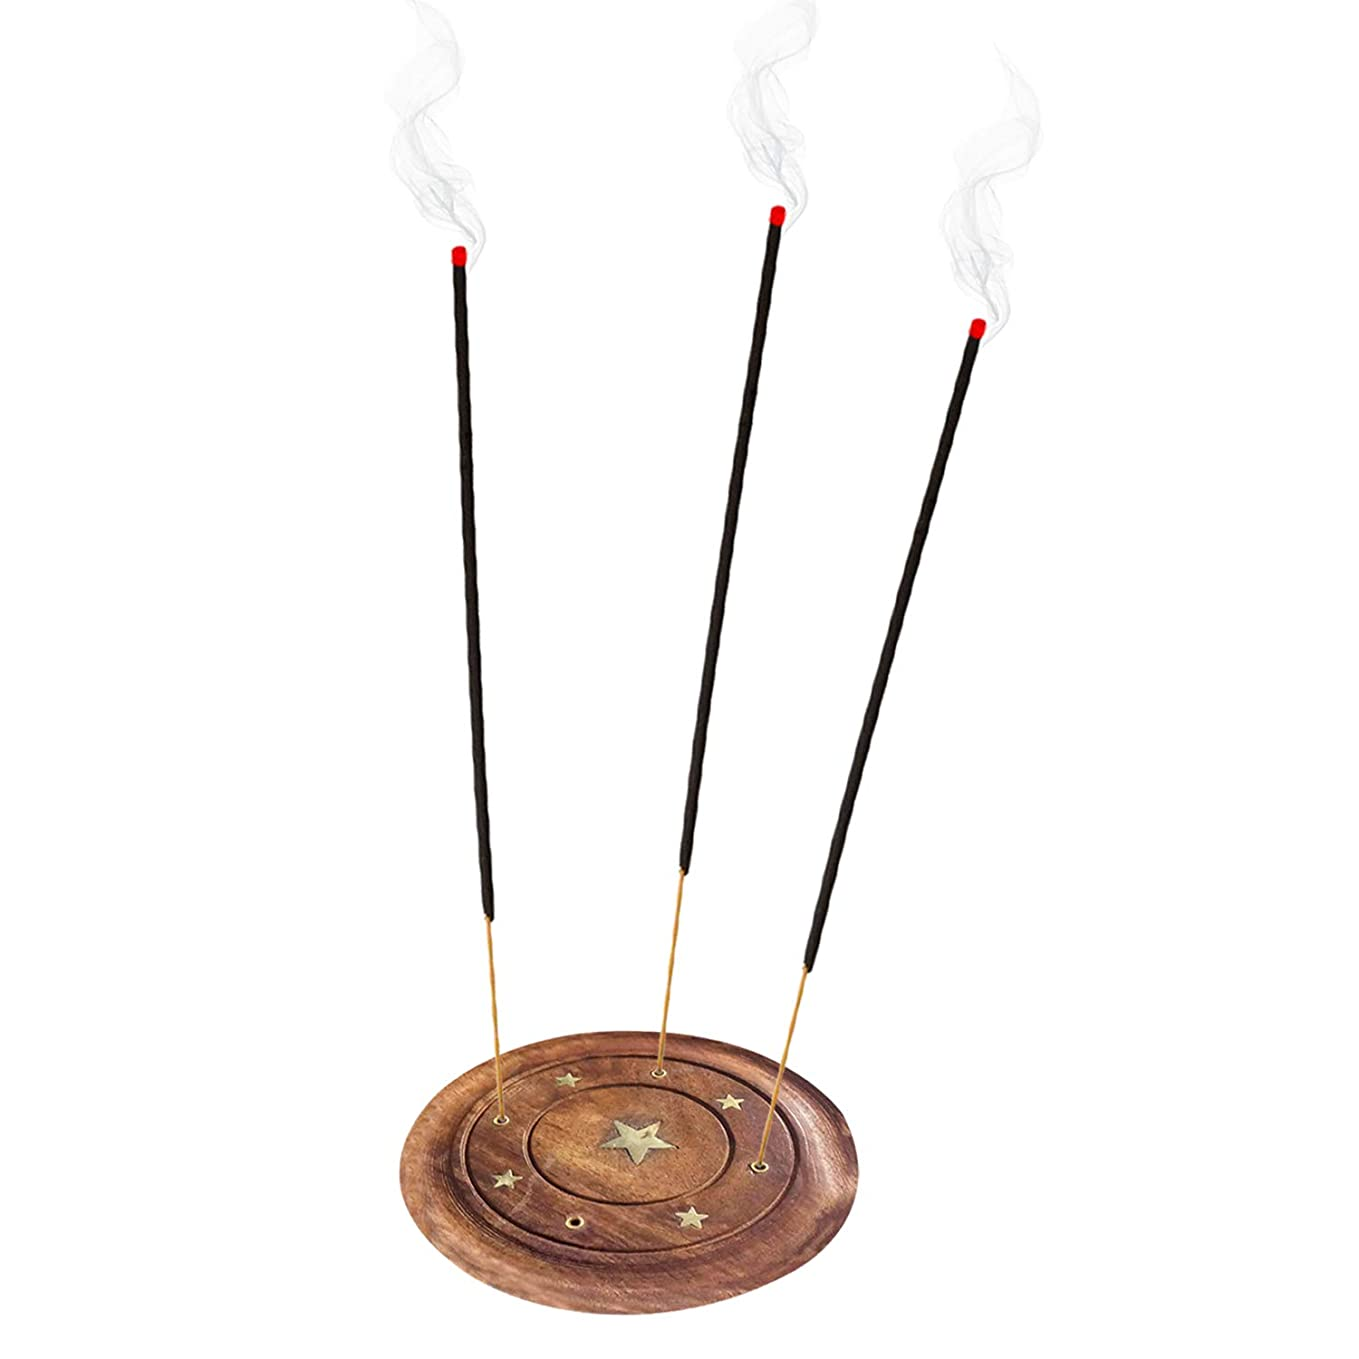 ブランチレガシーブロックWooden Incense Saucer Plate Holder star Design